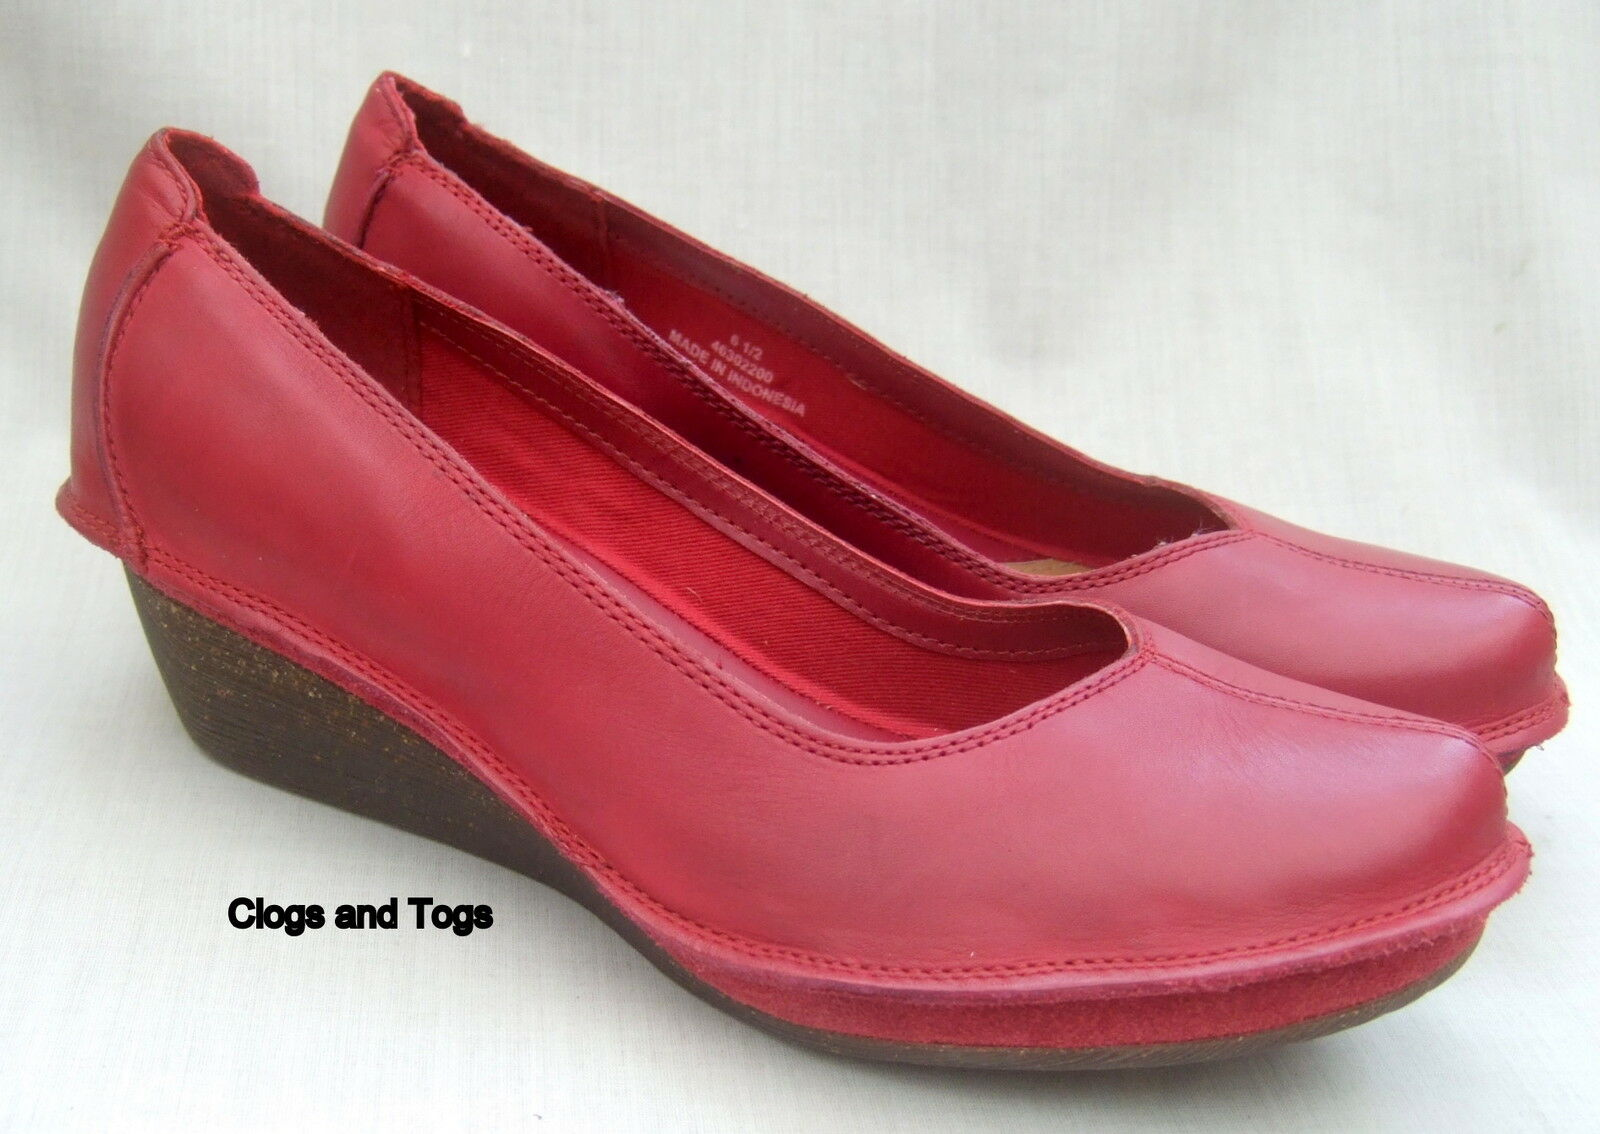 NEW CLARKS FOREST FIG RED LEATHER SHOES